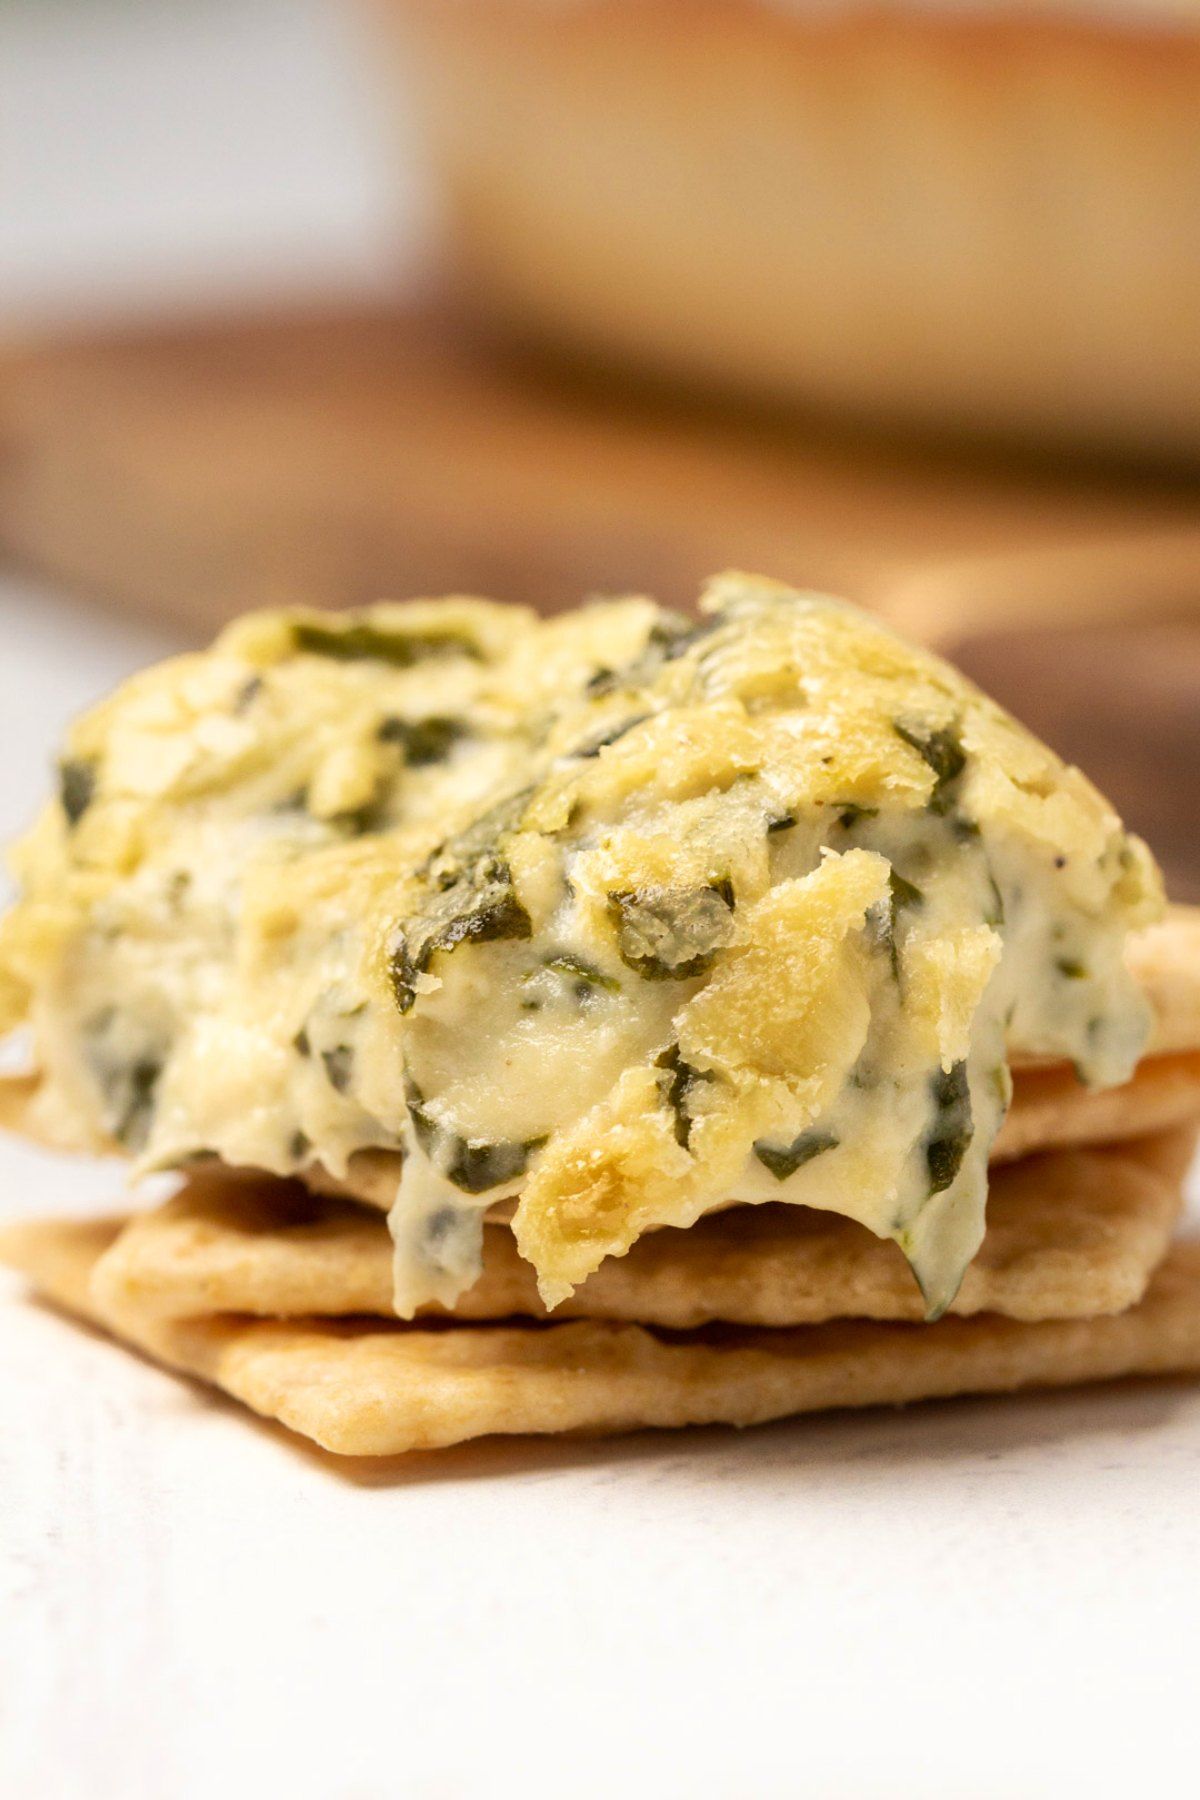 Vegan spinach dip on crackers.